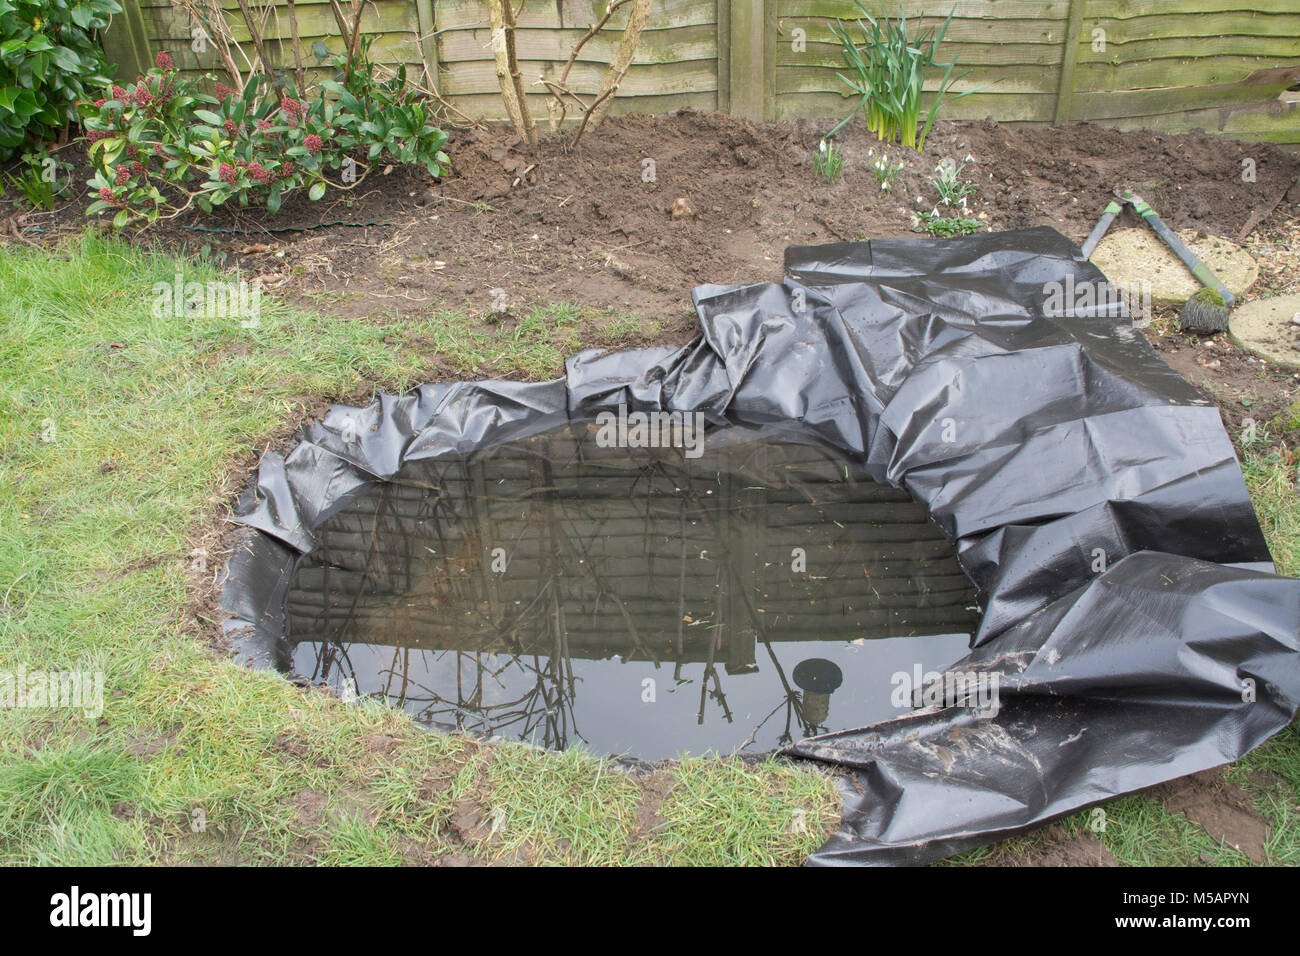 Preparing and lining a garden pond for wildlife - Stock Image